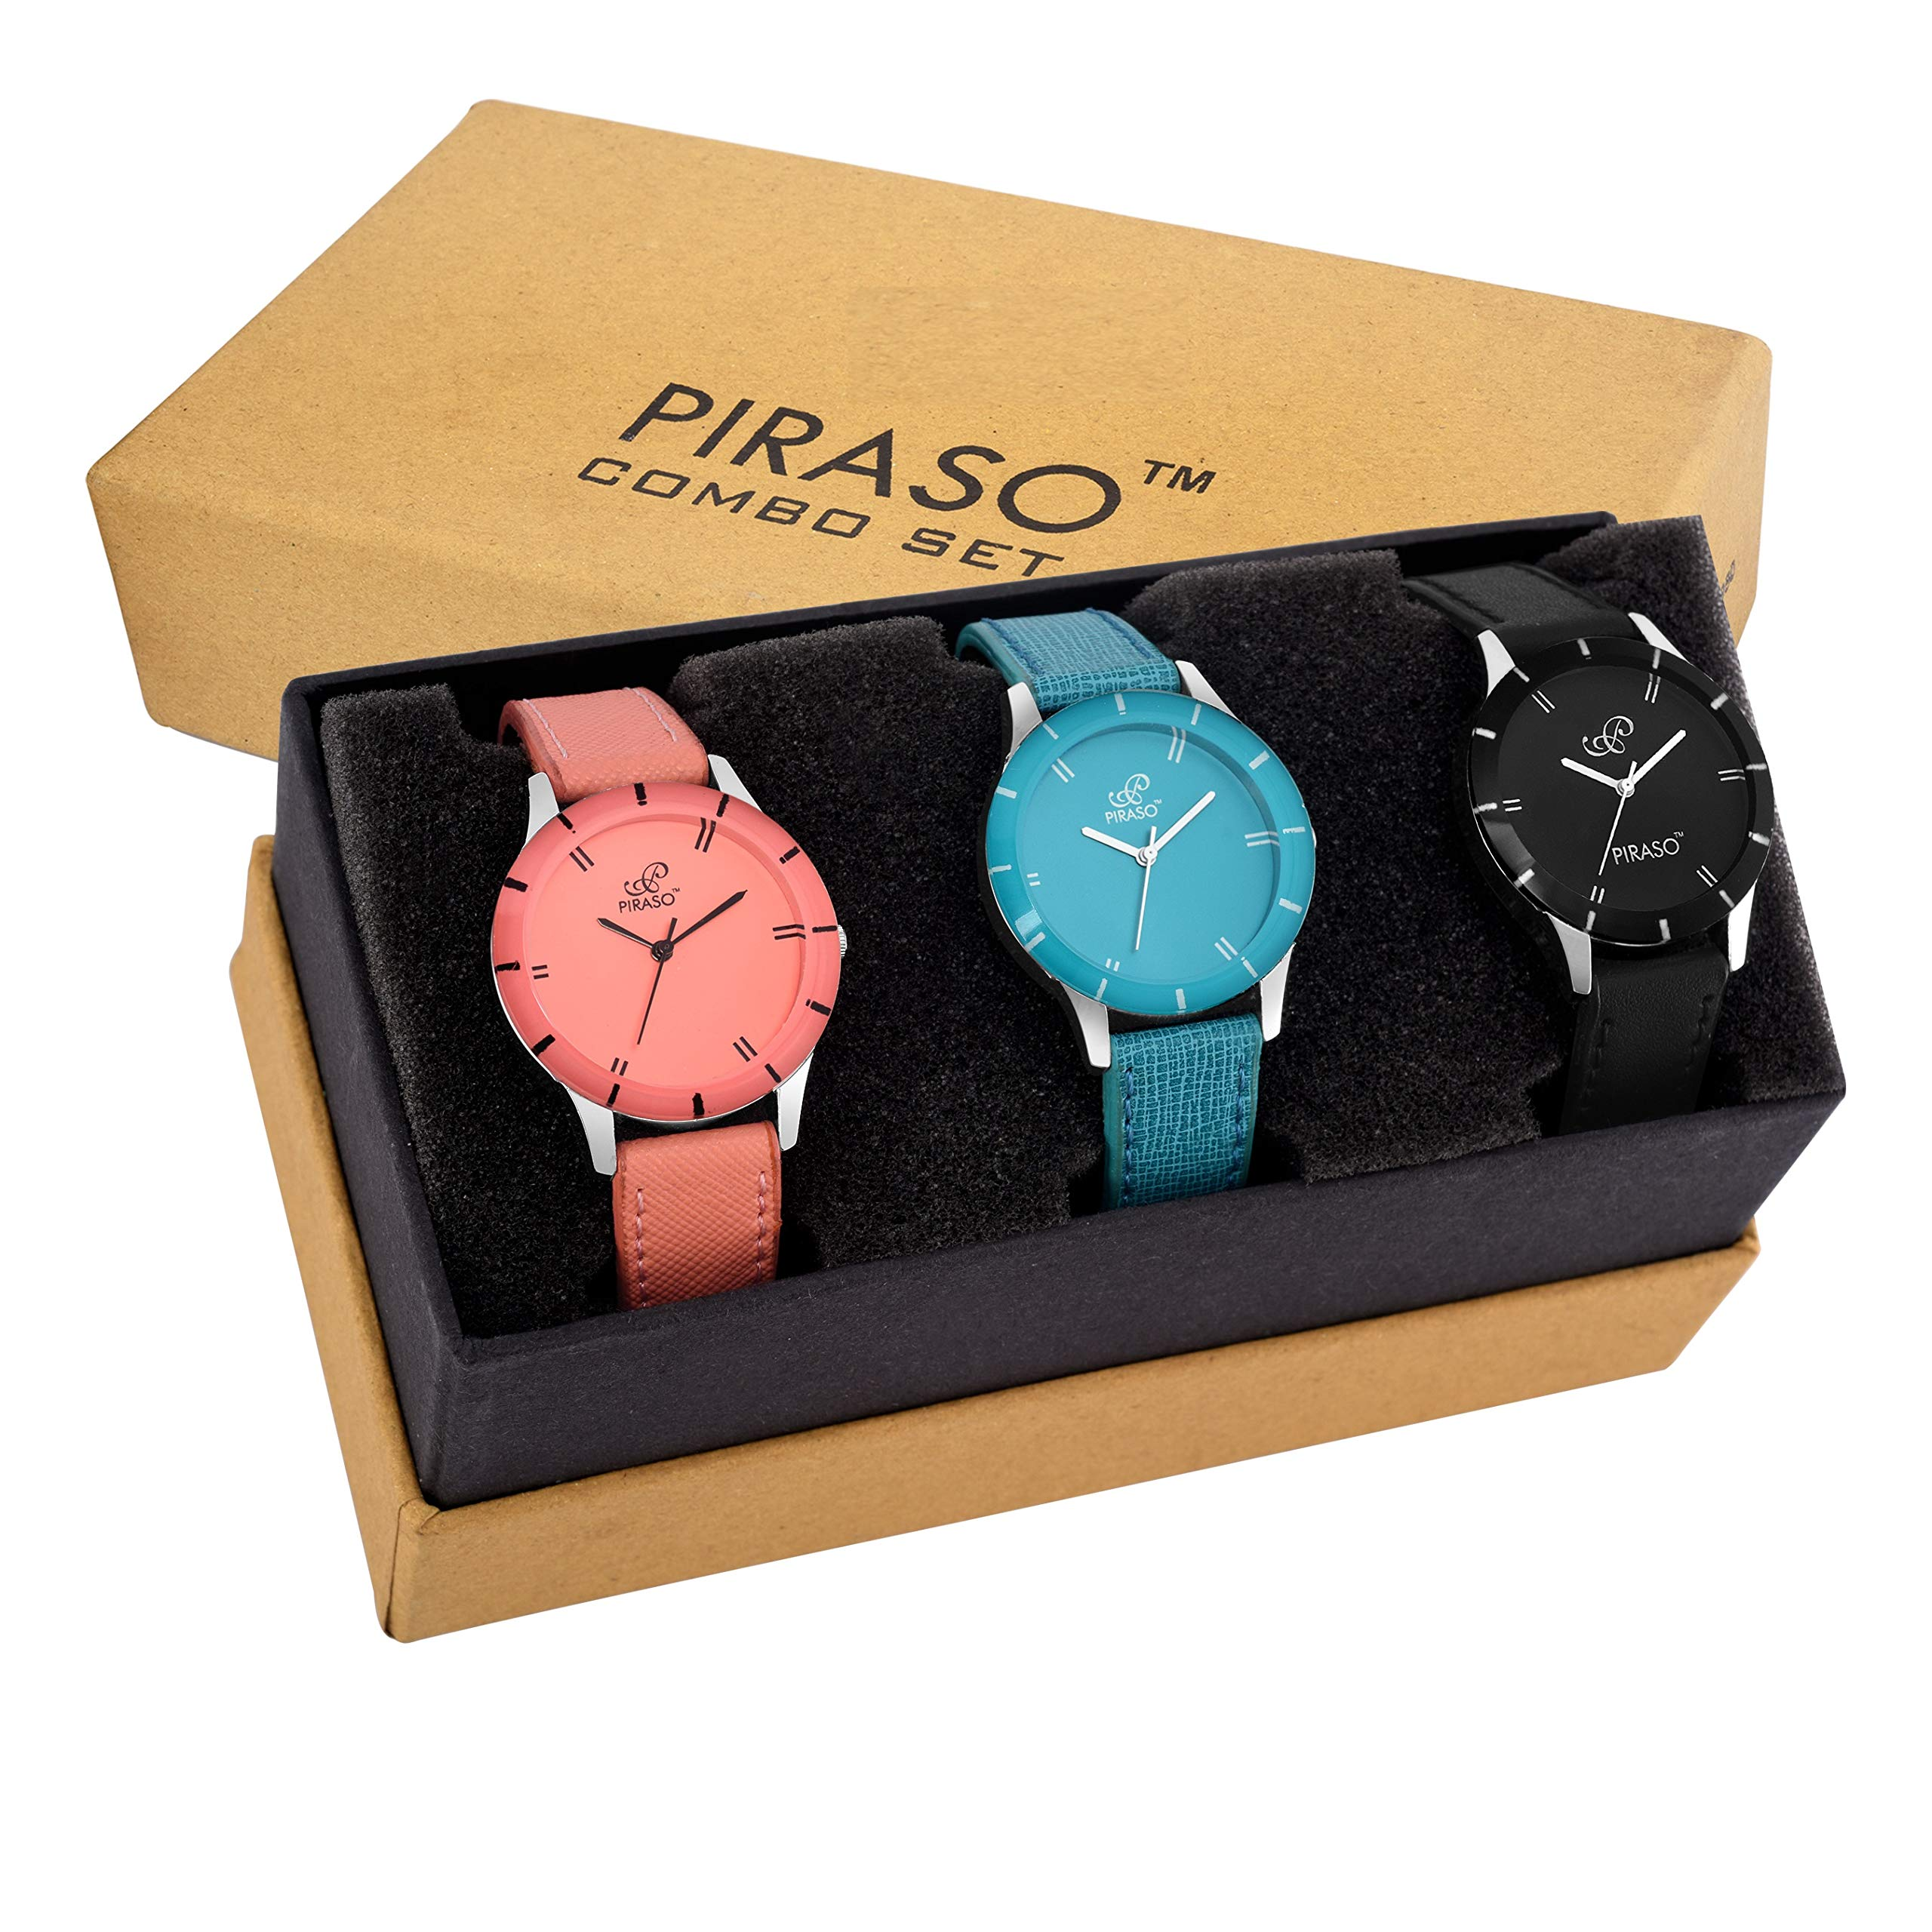 PIRASO Fasttrend Analogue Black Dial Girl's Watch- PW3-07 product image